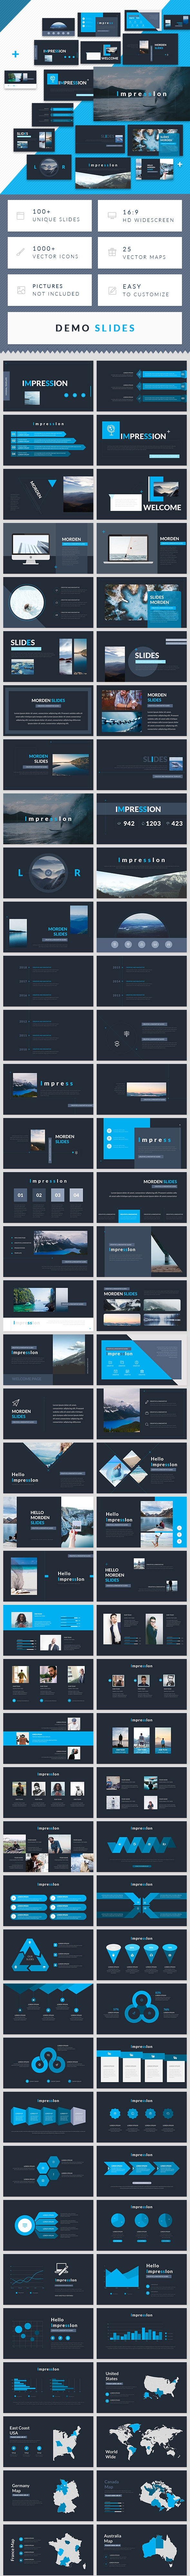 Impression - PowerPoint Presentation Template - Business PowerPoint Templates